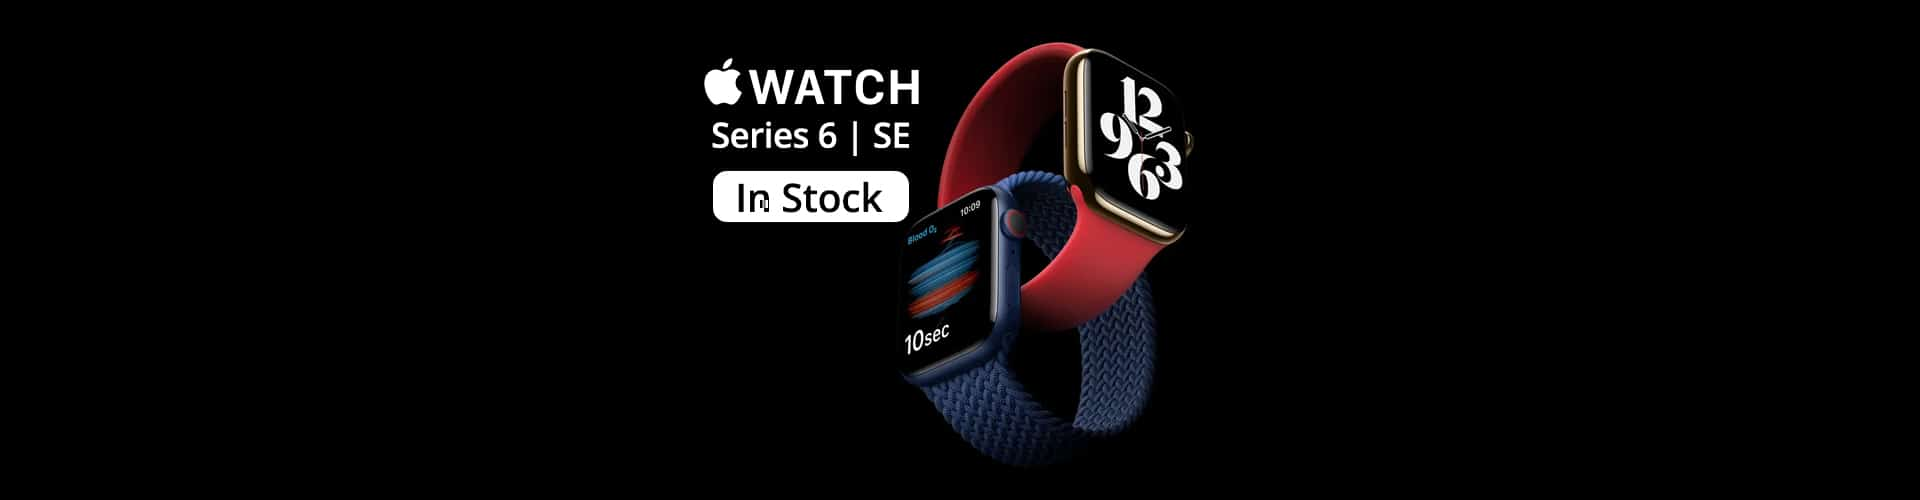 Apple Watch Series 6 | SE